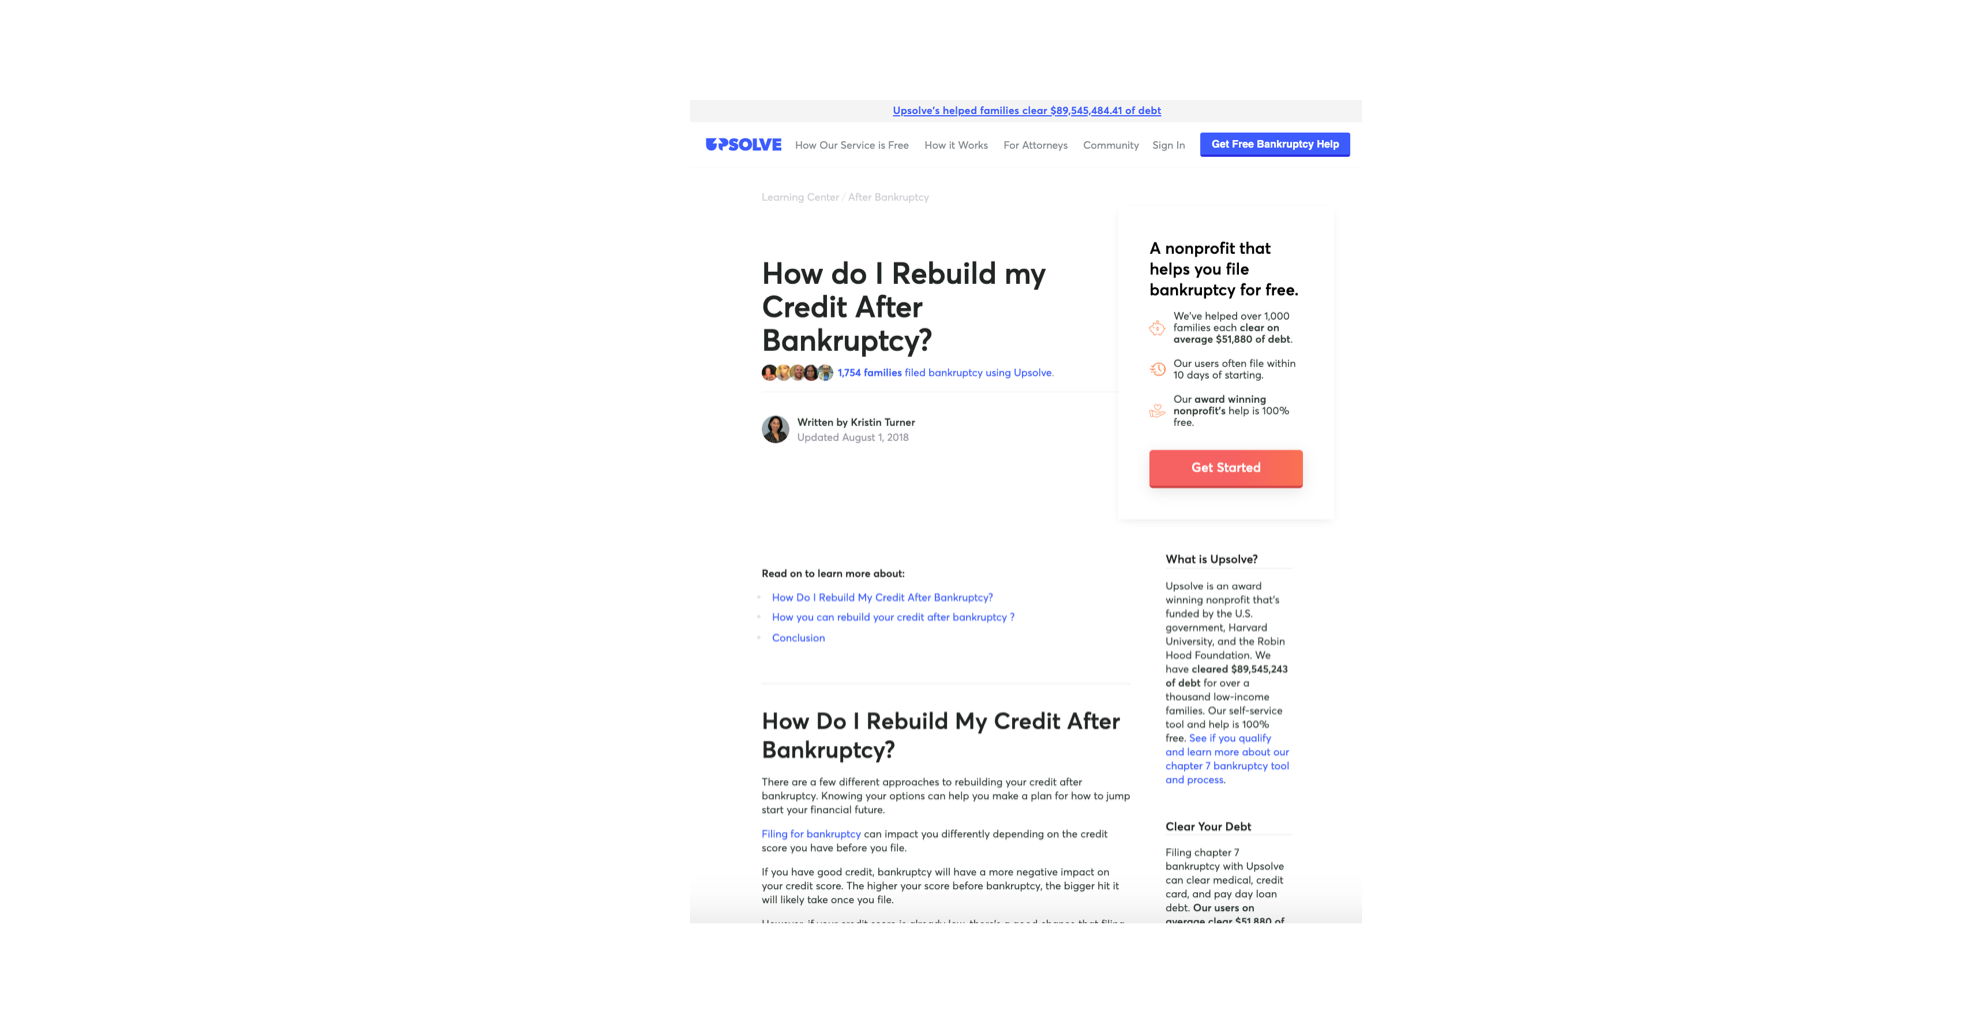 A guide on rebuilding credit after bankruptcy, an example of our editorial landing pages